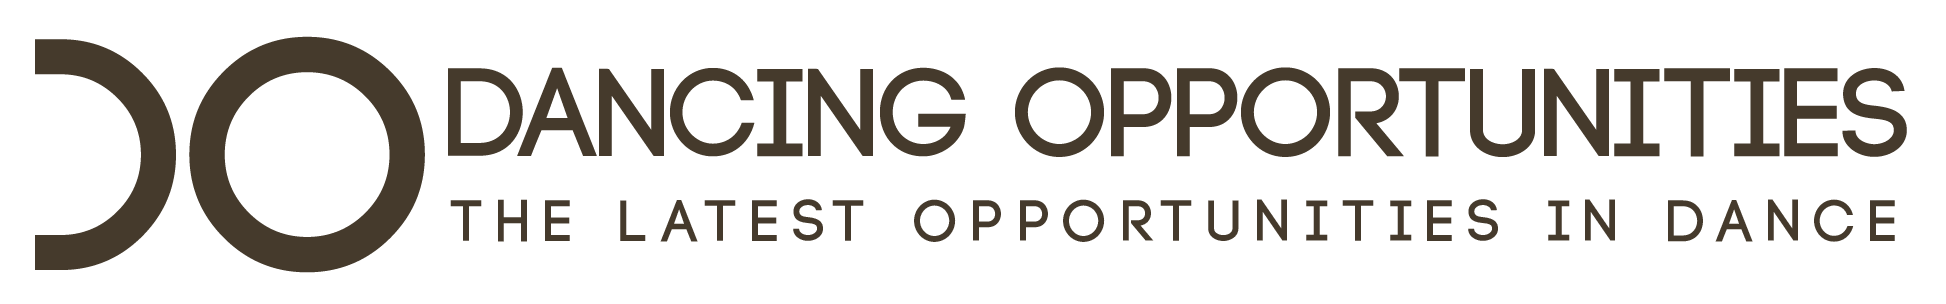 Dancing Opportunities Logo29444